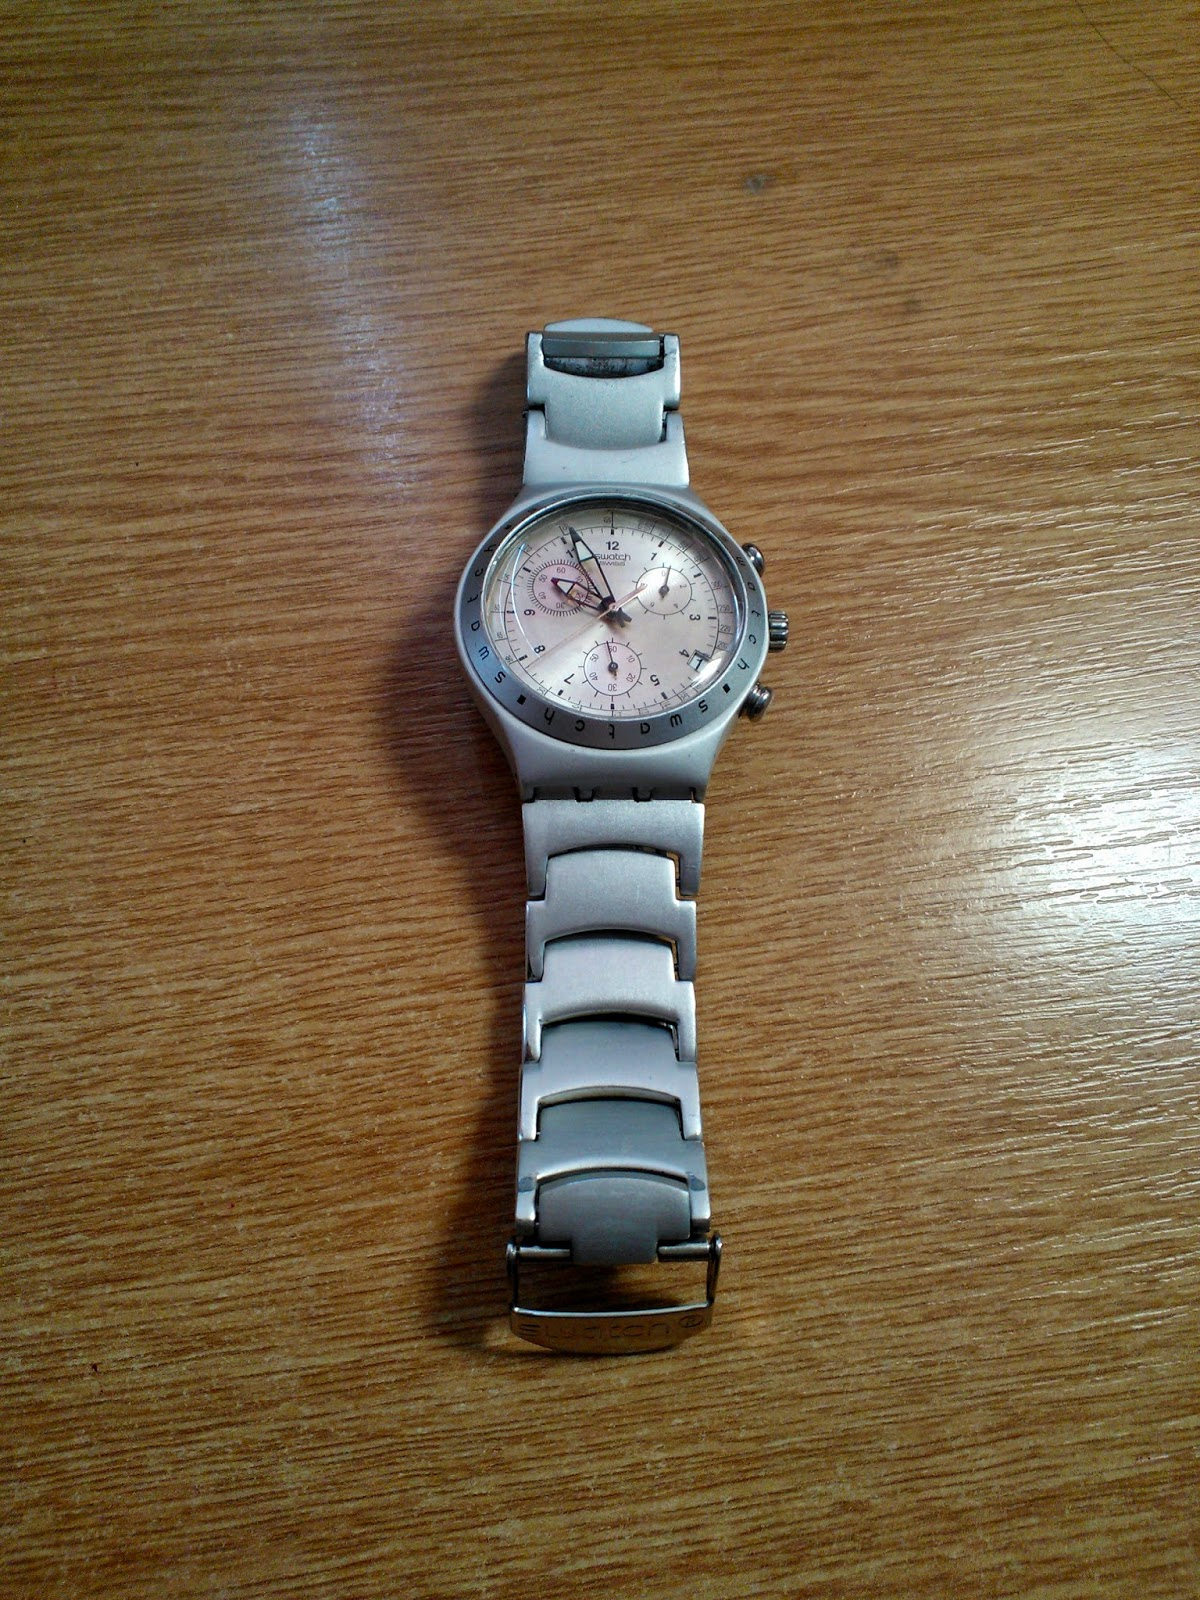 nixon fashion natal watches swatch jewellery beauty clothing mail junk and durban mens westville switch kwazulu